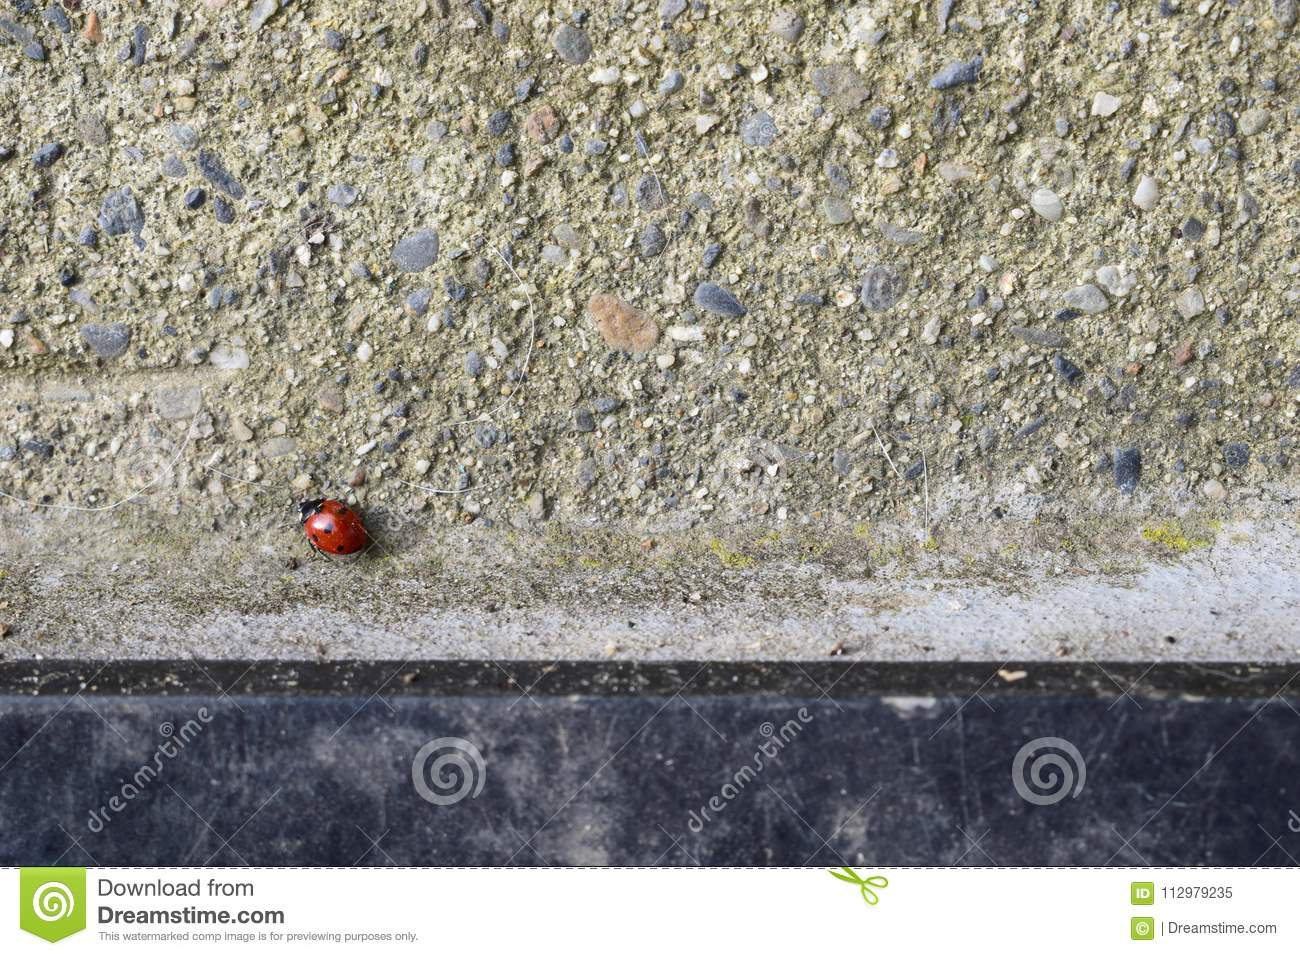 Red ladybug walking on grey cement